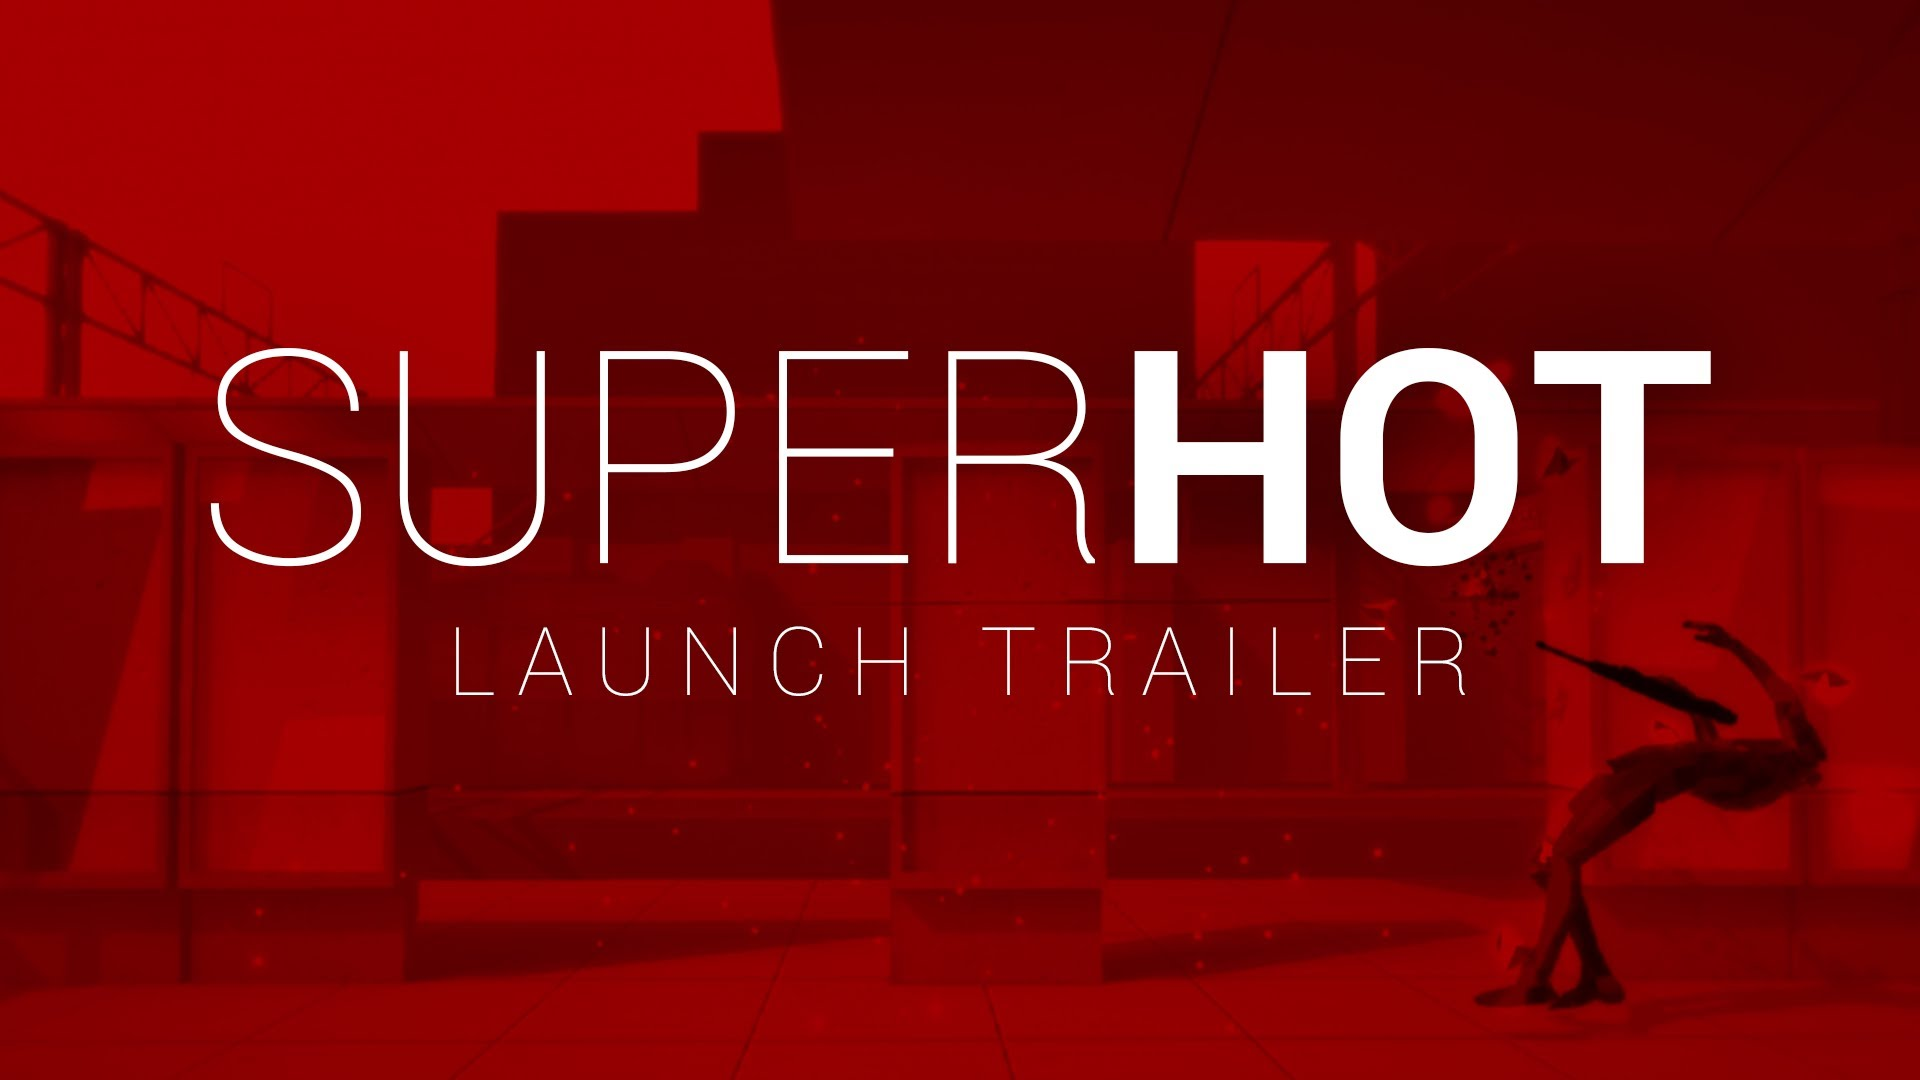 SUPERHOT LAUNCH TRAILER